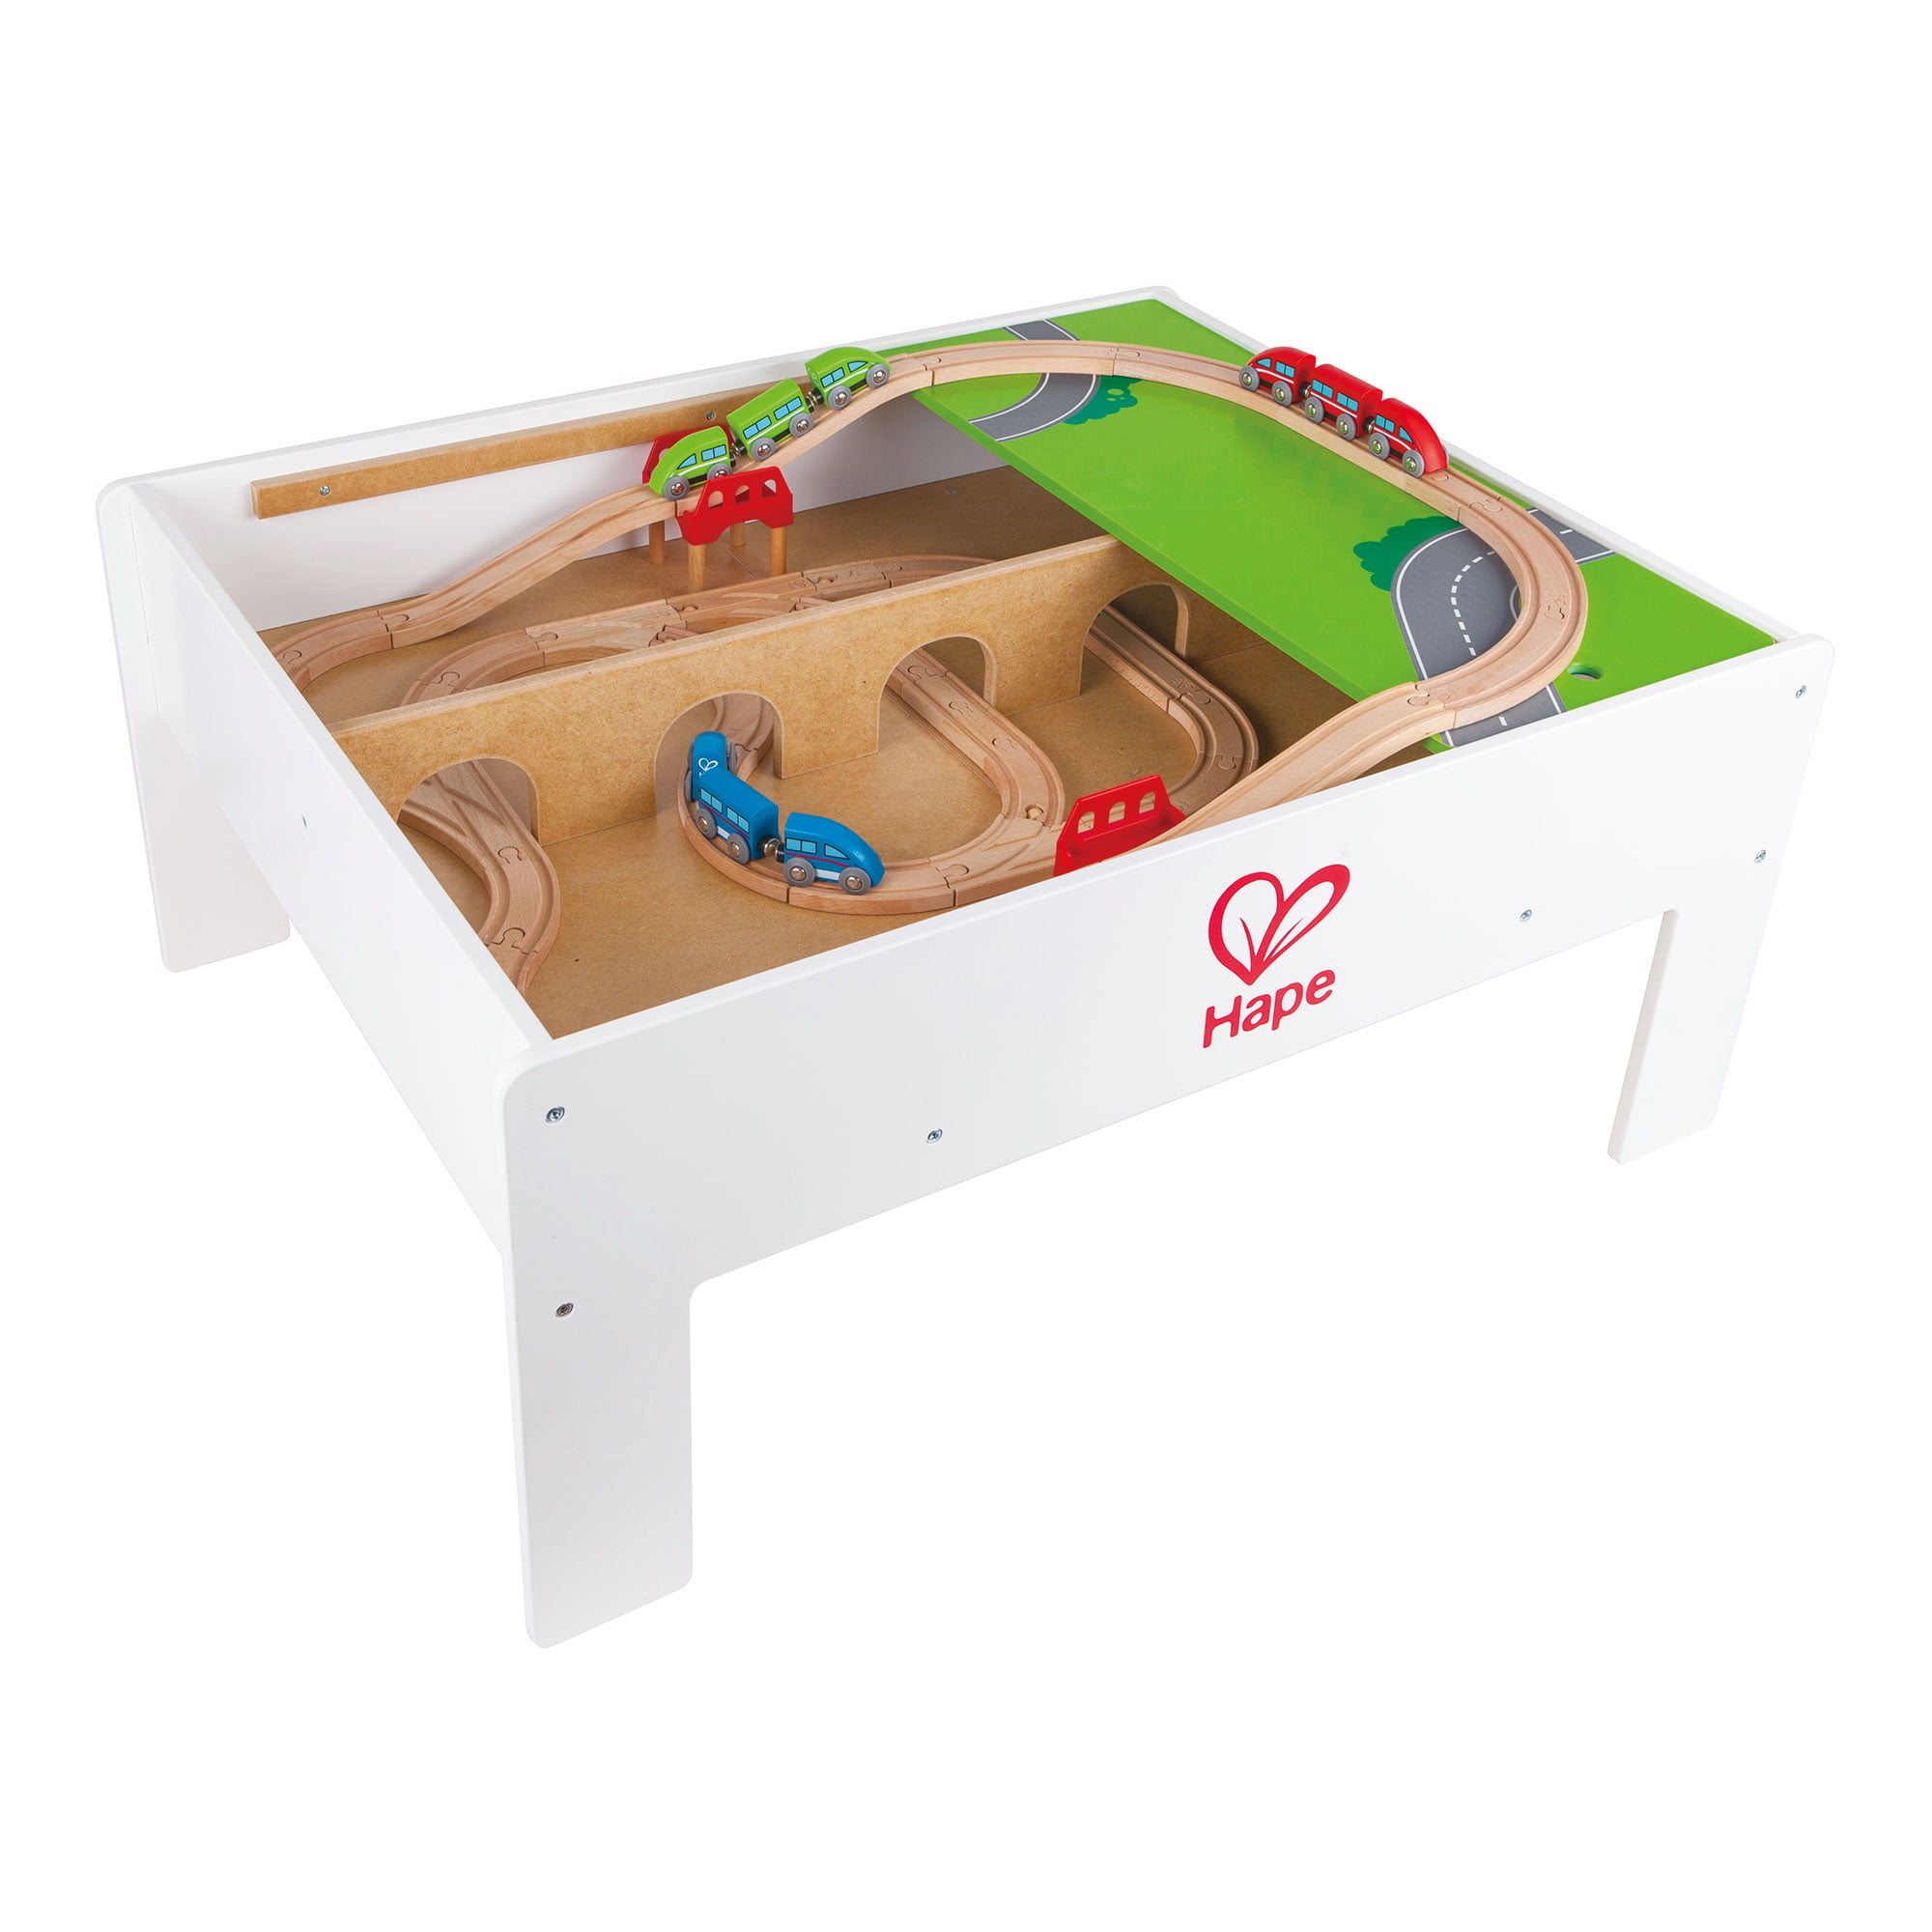 Hape Railway Play and Stow Wooden Train Set Activity & Toy Storage Play Table by HaPe